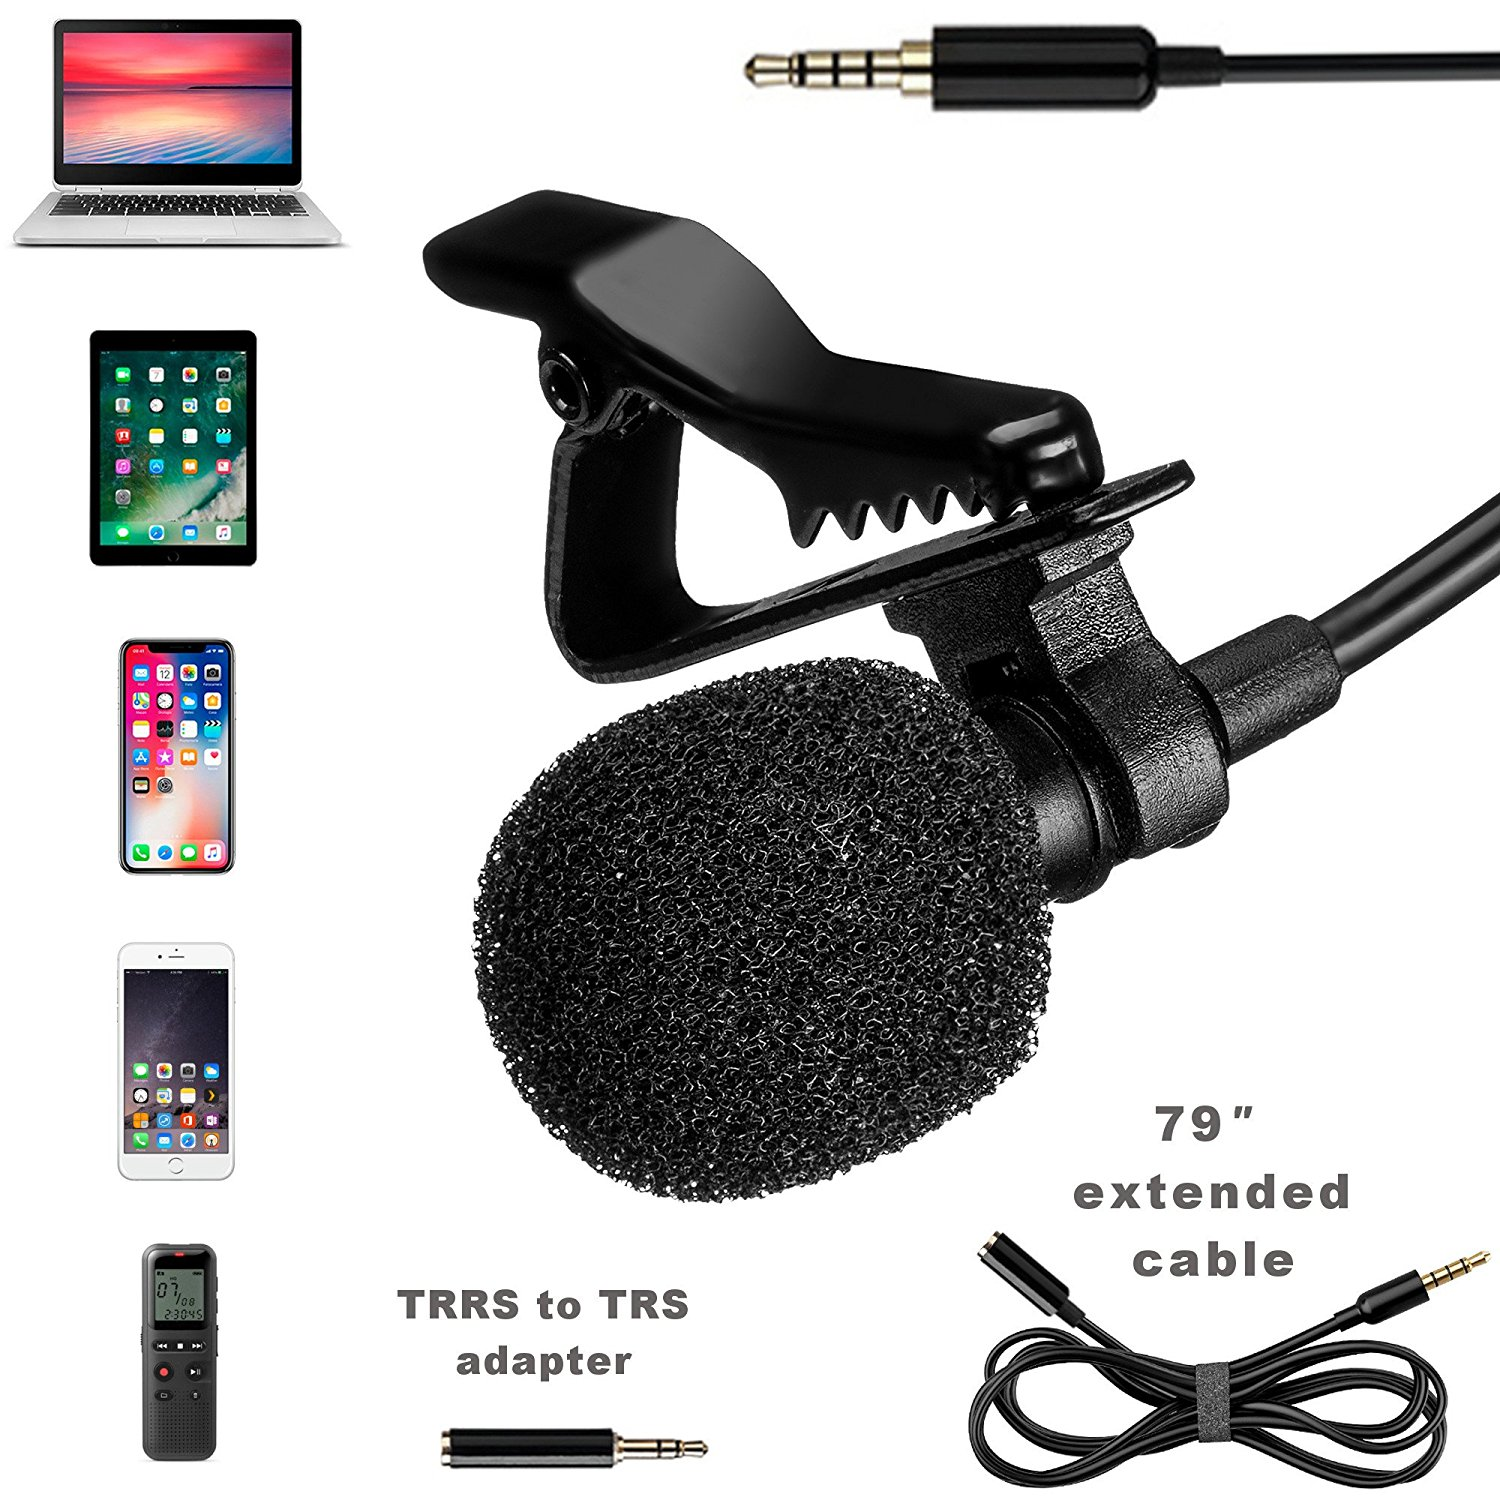 Lavalier Microphone - Professional Lapel Mic For Recording Interview, Podcast, Speech, Vlog, Video, Youtube - External Mic For iPhone, Android, Laptop - Pro Grade Lapel Microphone - Clip-On Microphone